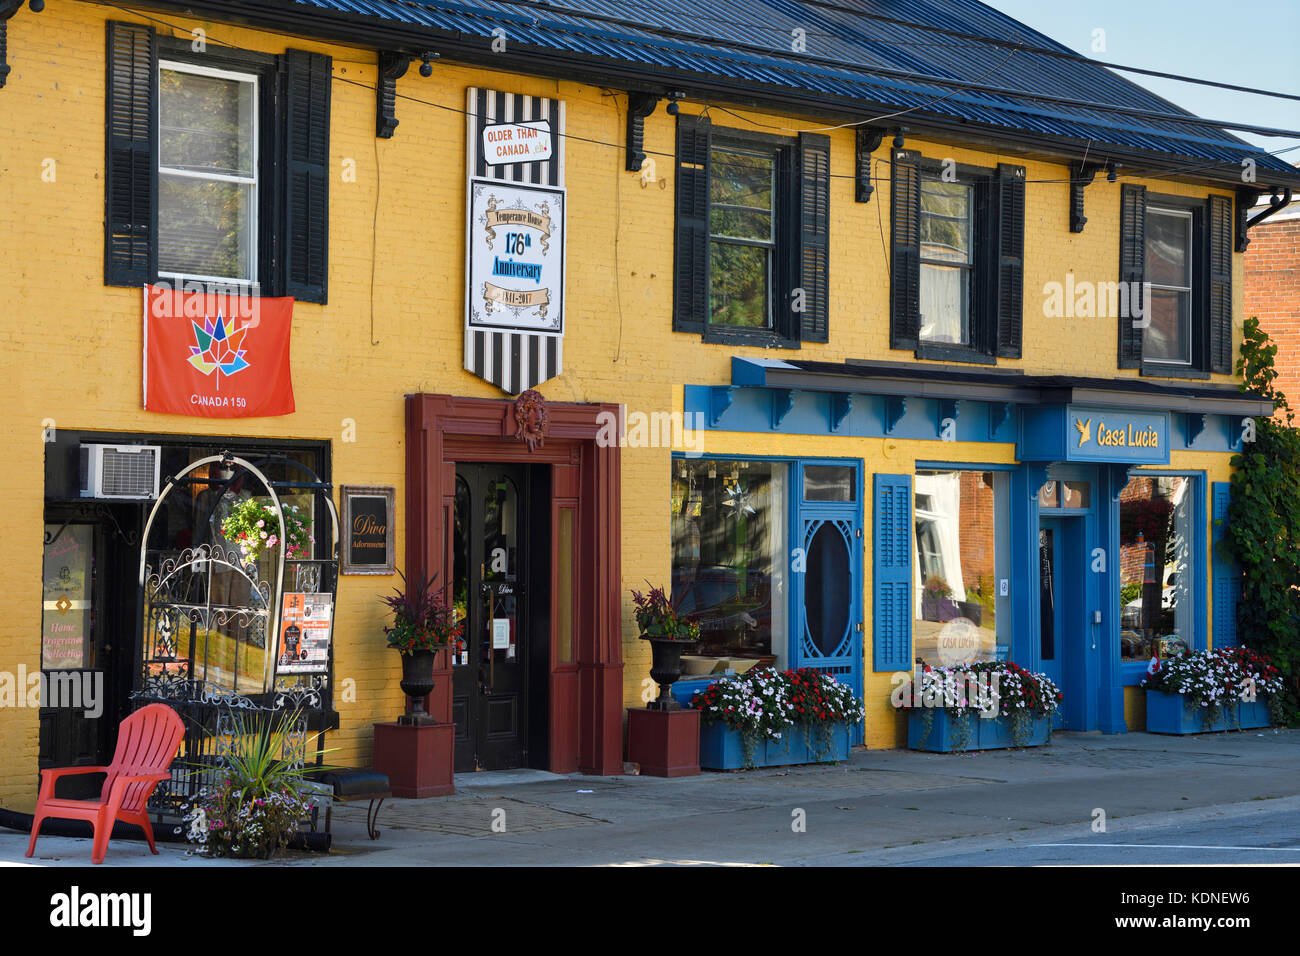 Colorful historic Temperance House with clothing and gift shops in Bloomfield Ontario Prince Edward County - Stock Image